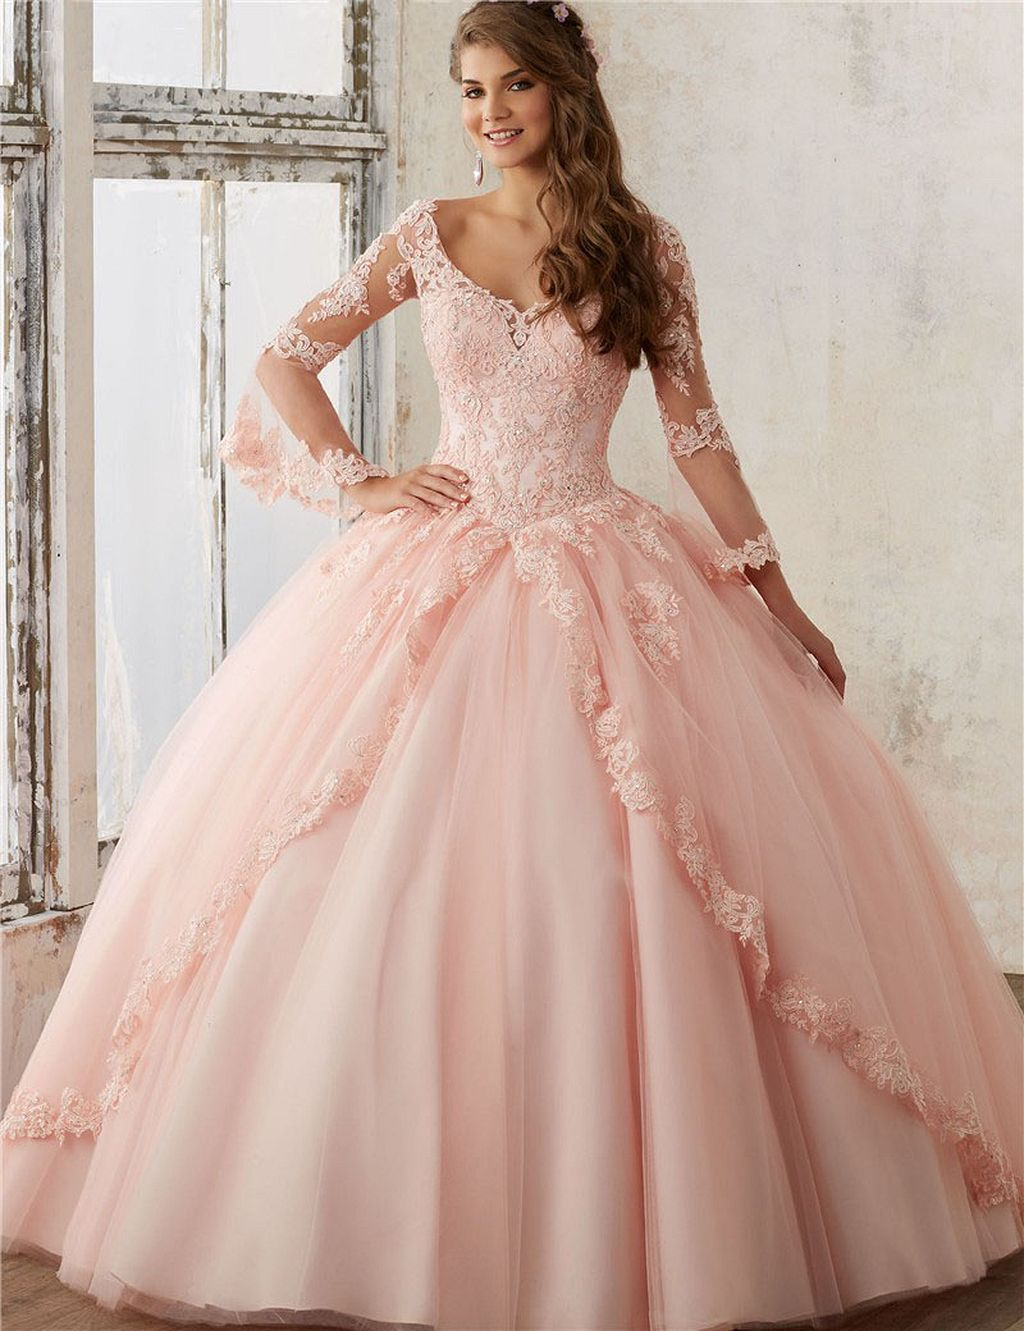 20+ Vintage Quinceanera Dresses For Your Wedding | Quinceañera ...